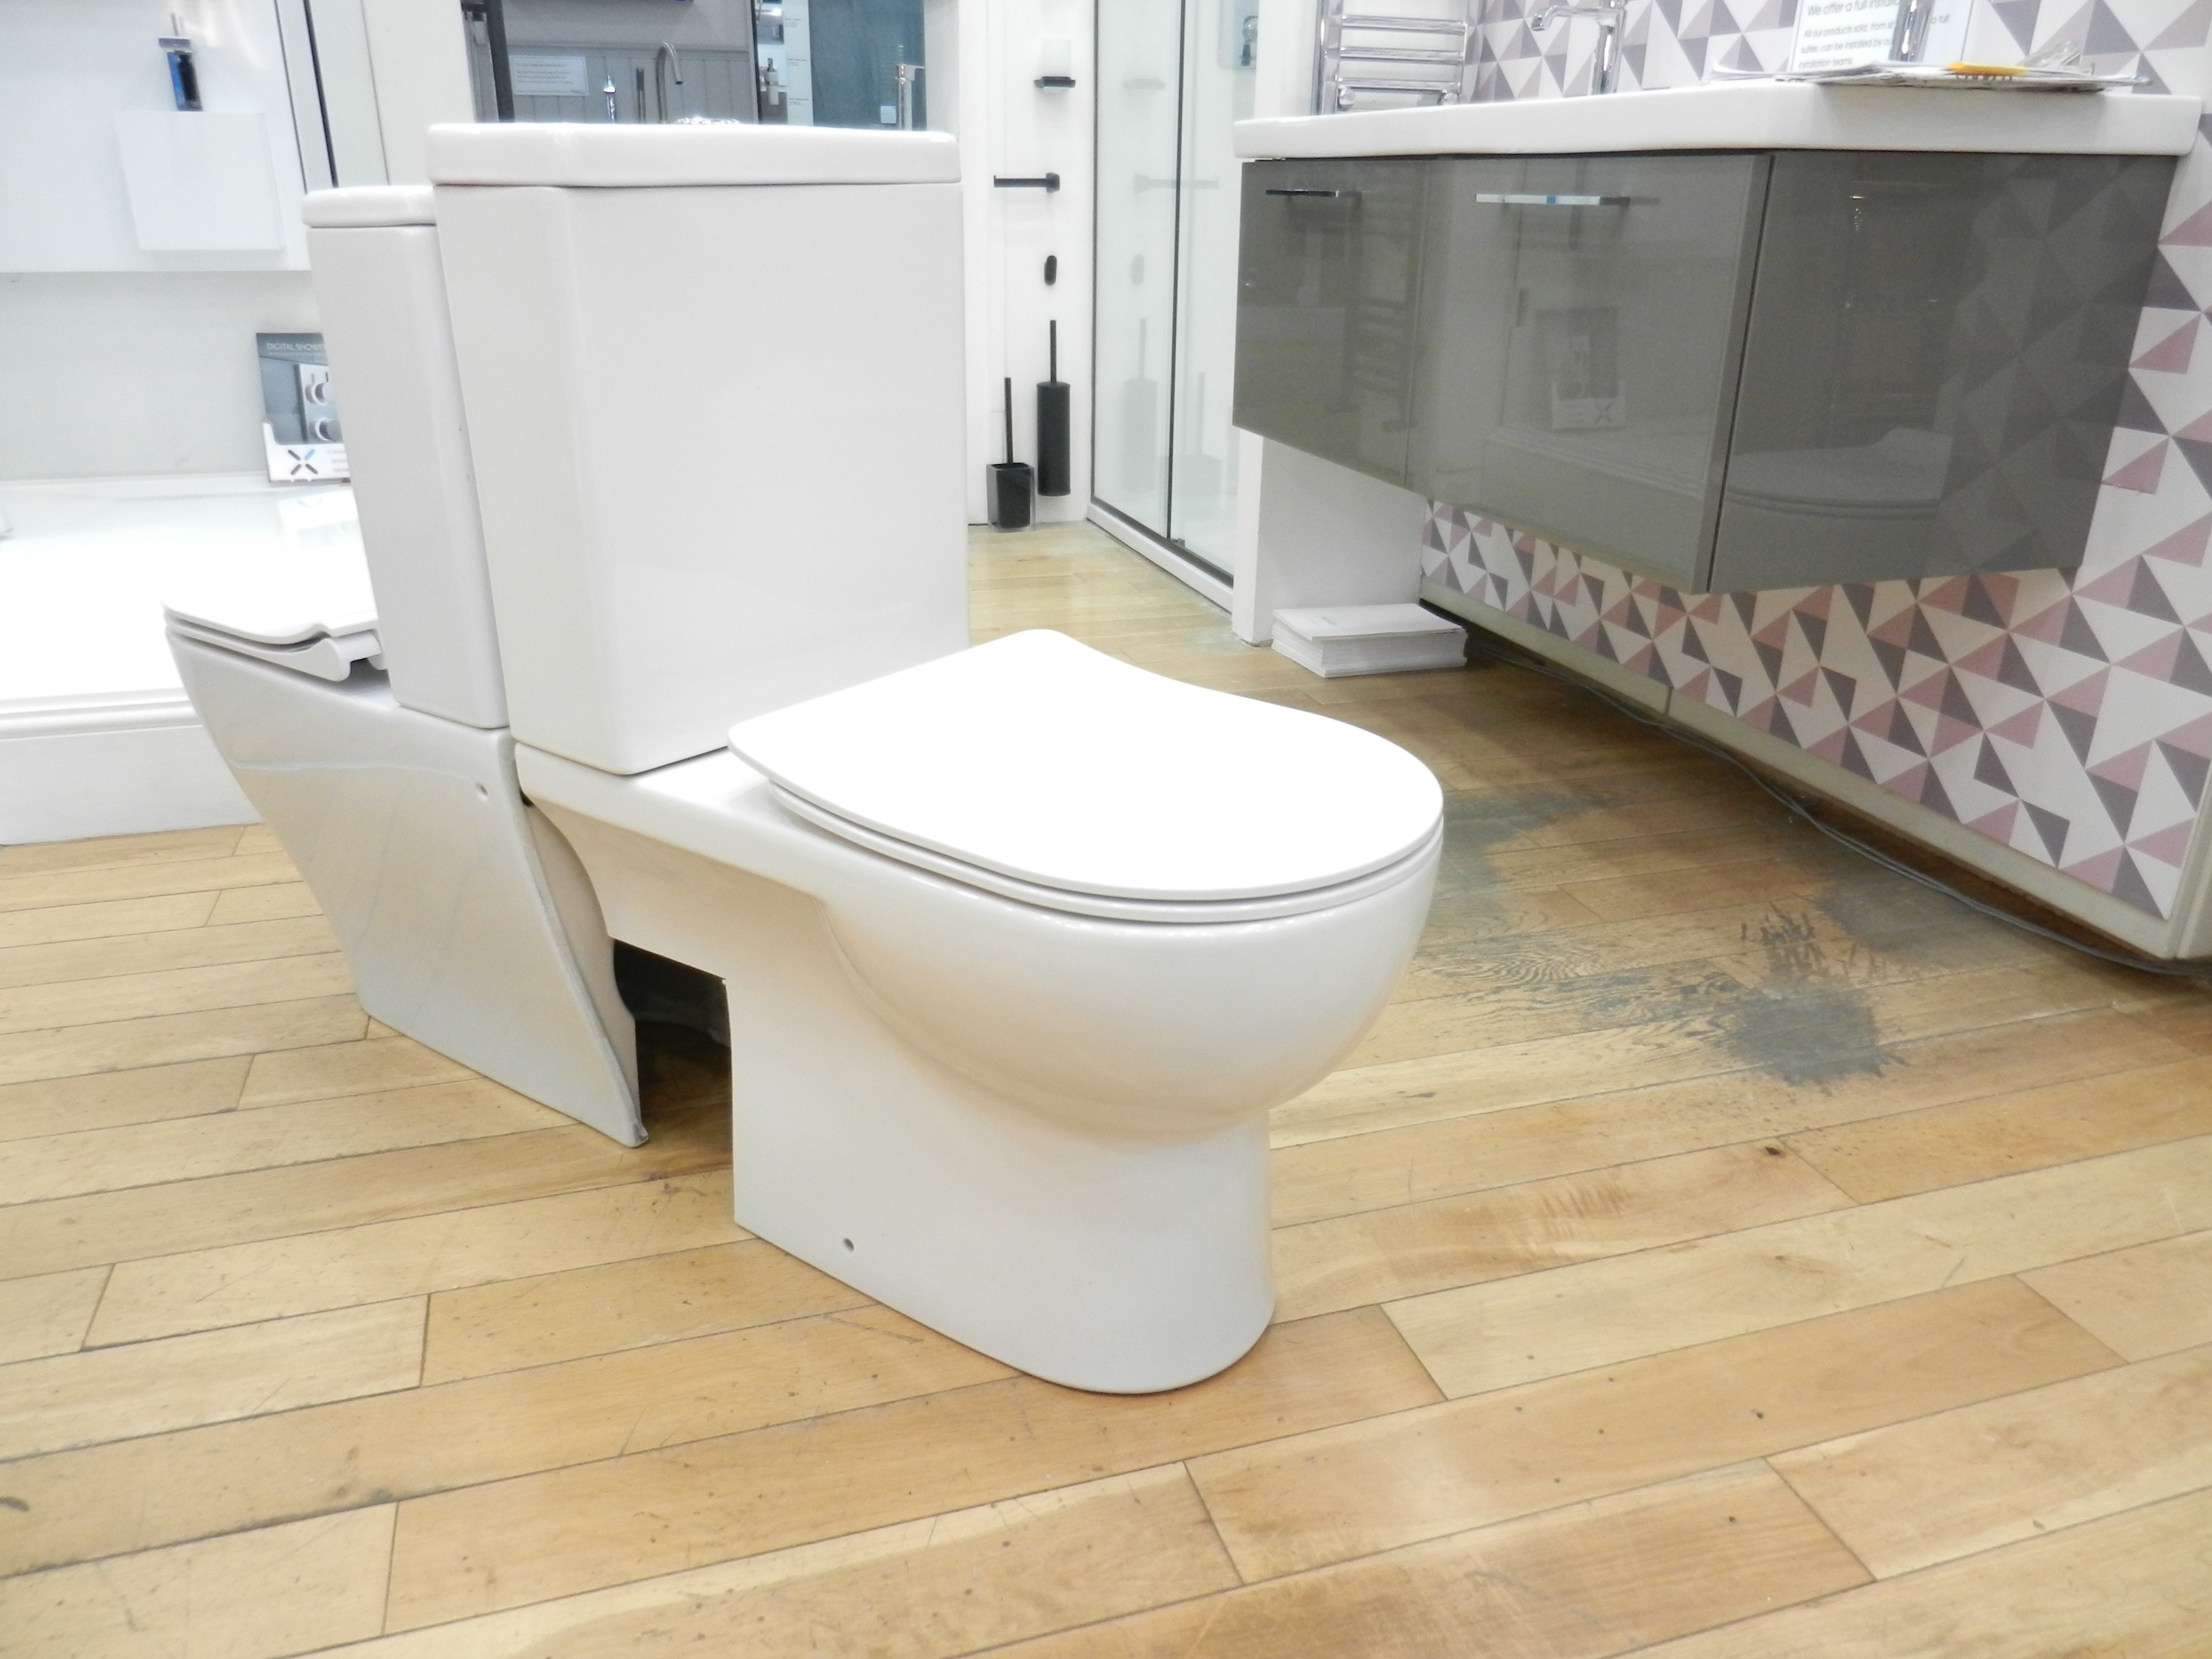 ex display sale bathrooms at source 2018